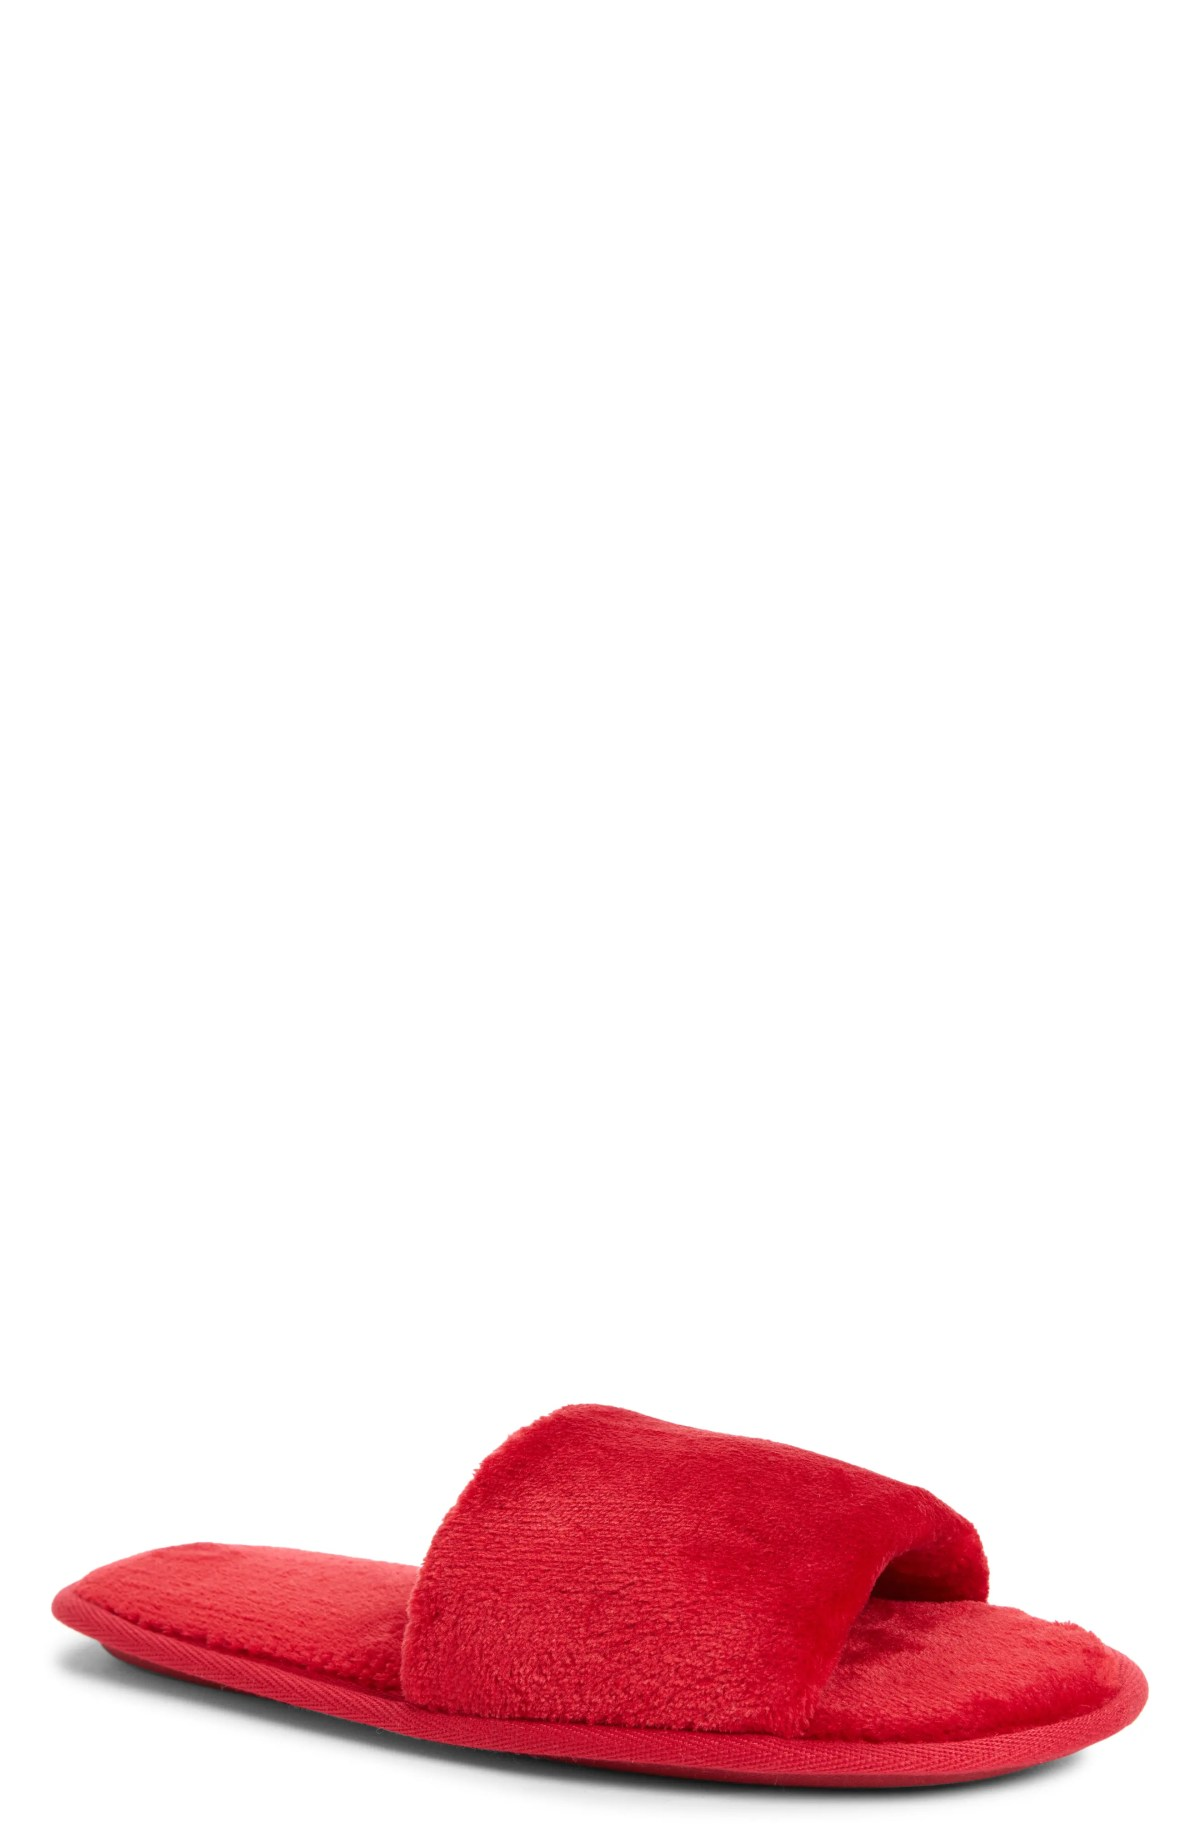 NORDSTROM Bliss Slipper, Main, color, RED CHILE